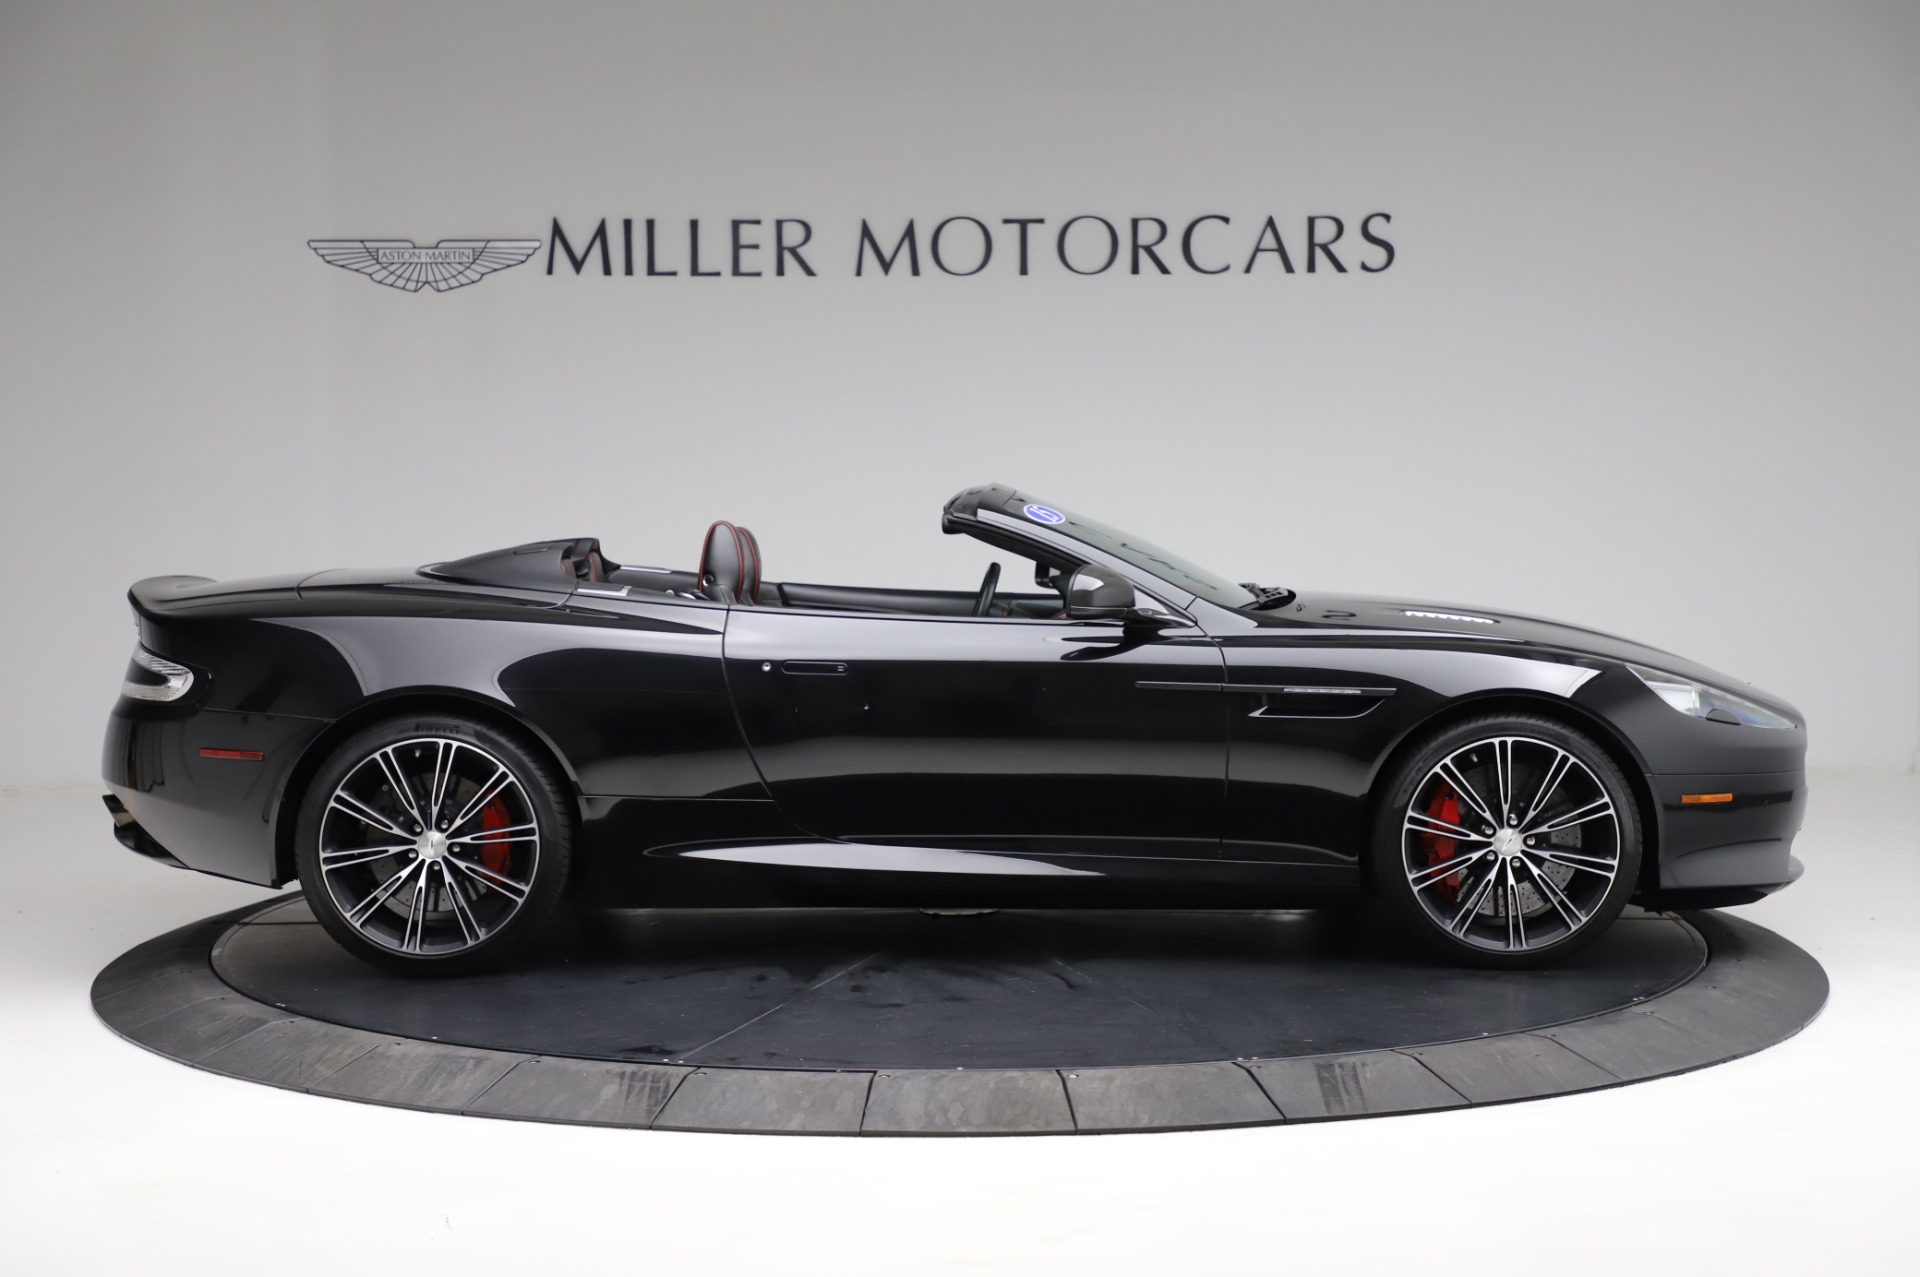 Used 2015 Aston Martin DB9 Carbon Edition Volante For Sale In Westport, CT 1919_p8